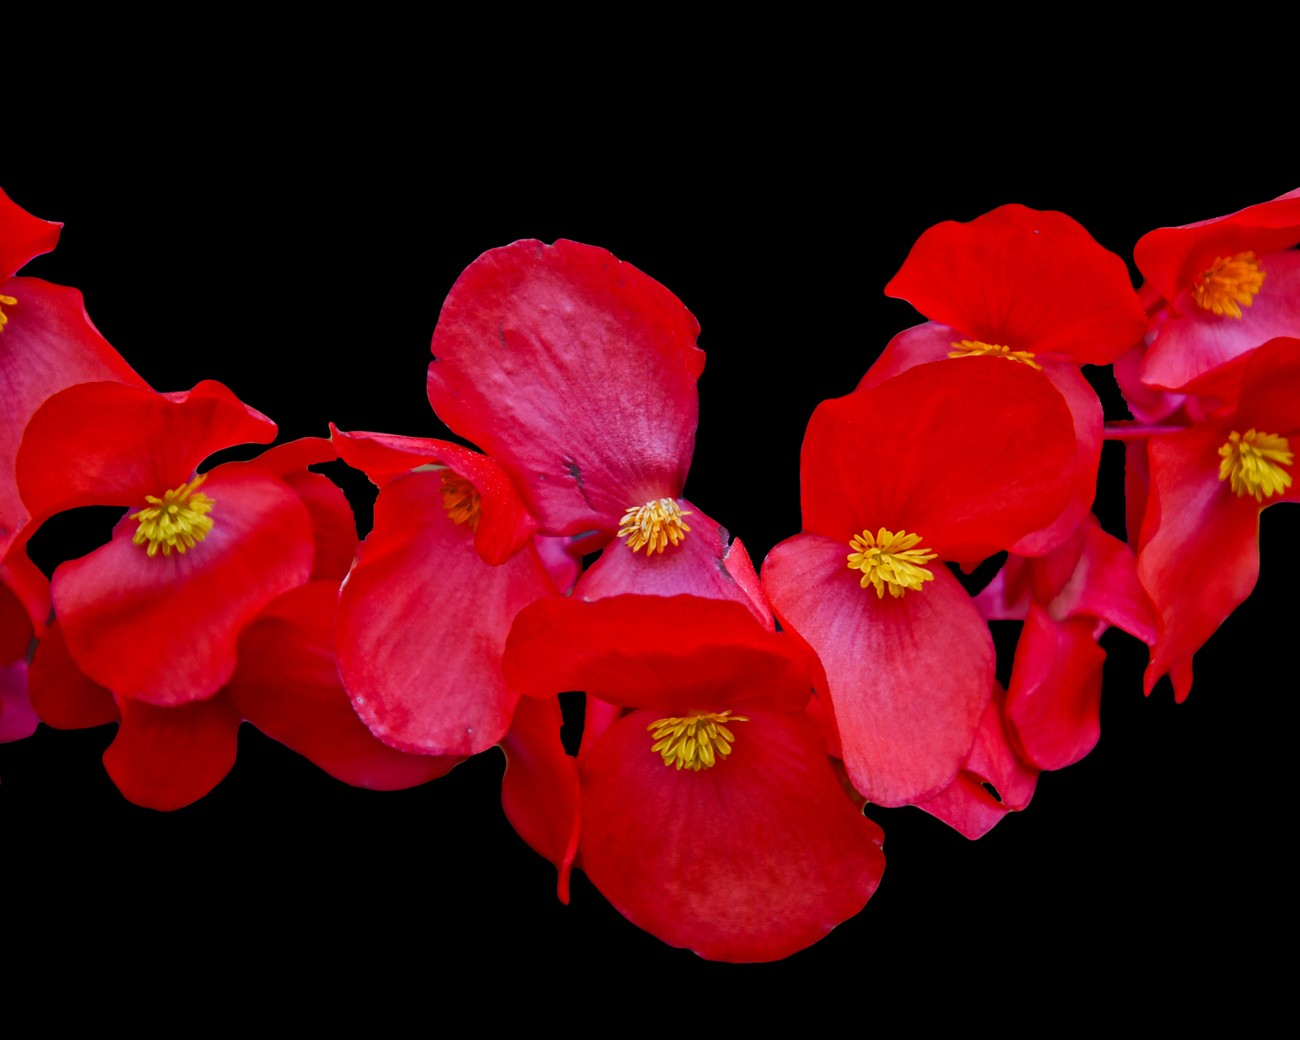 Red begonia flowers.  Photo taken in my sister's backyard in Amherst, NY